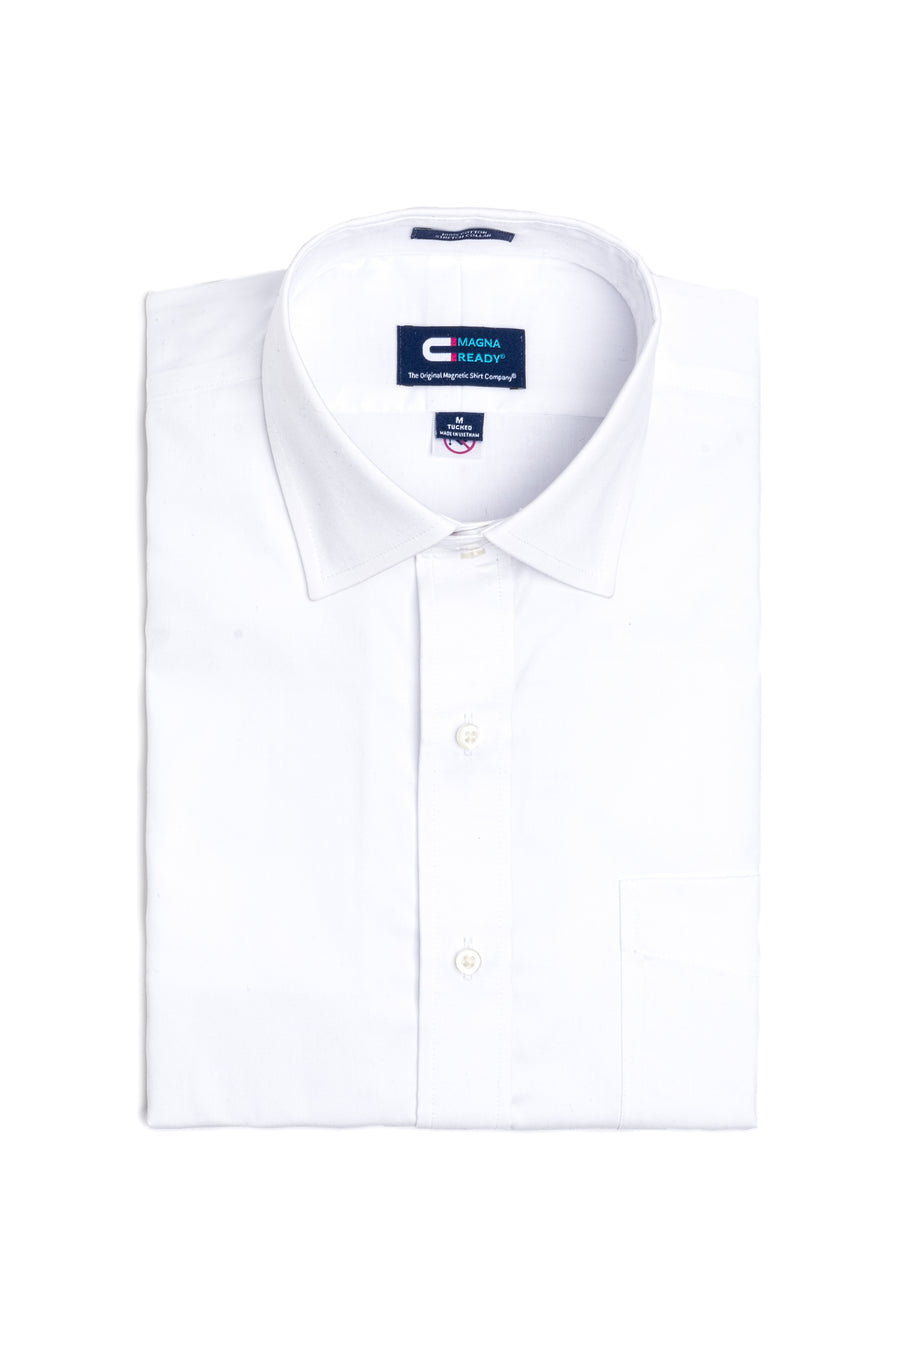 White Pinpoint Long Sleeve Shirt with Magnetic Closures